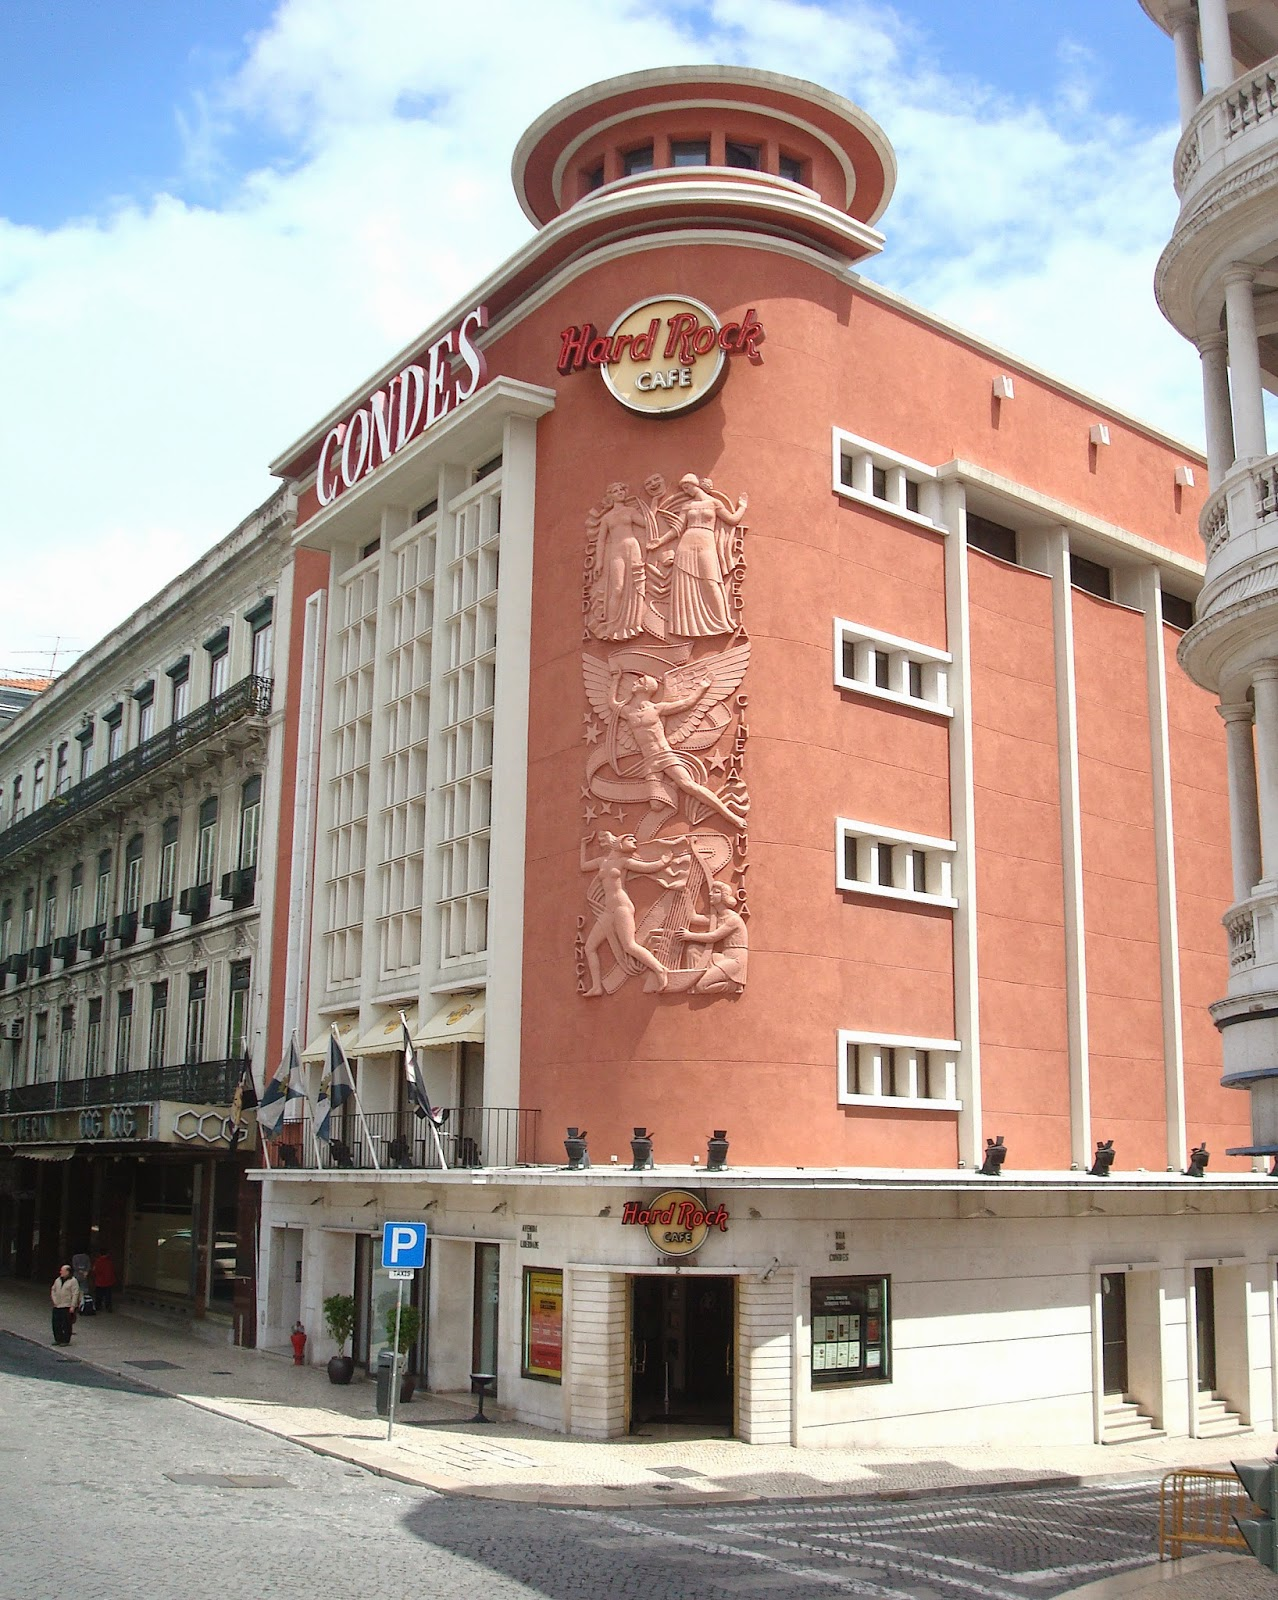 Hard Rock Cafe, Lisbon